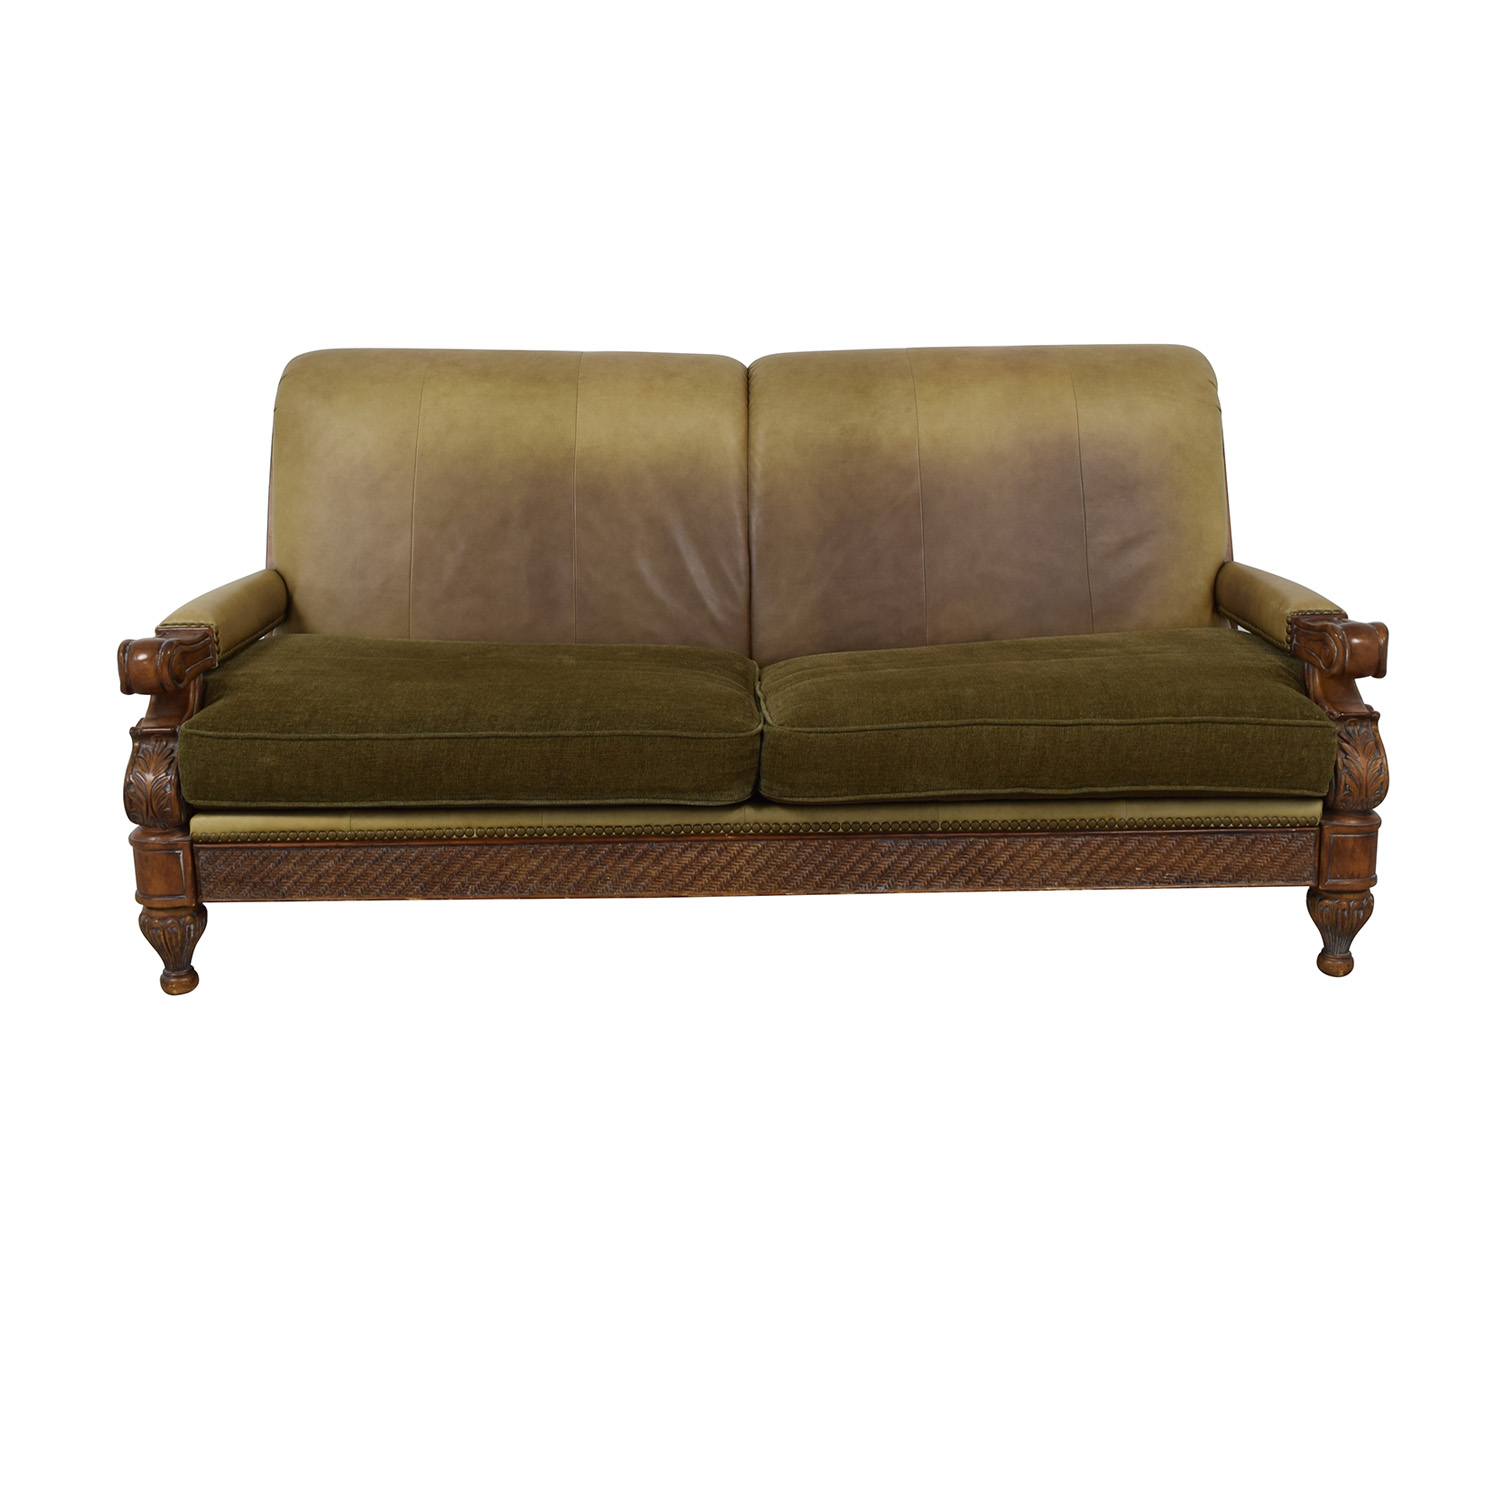 Schnadig Schnadig Two-Cushion Sofa nj